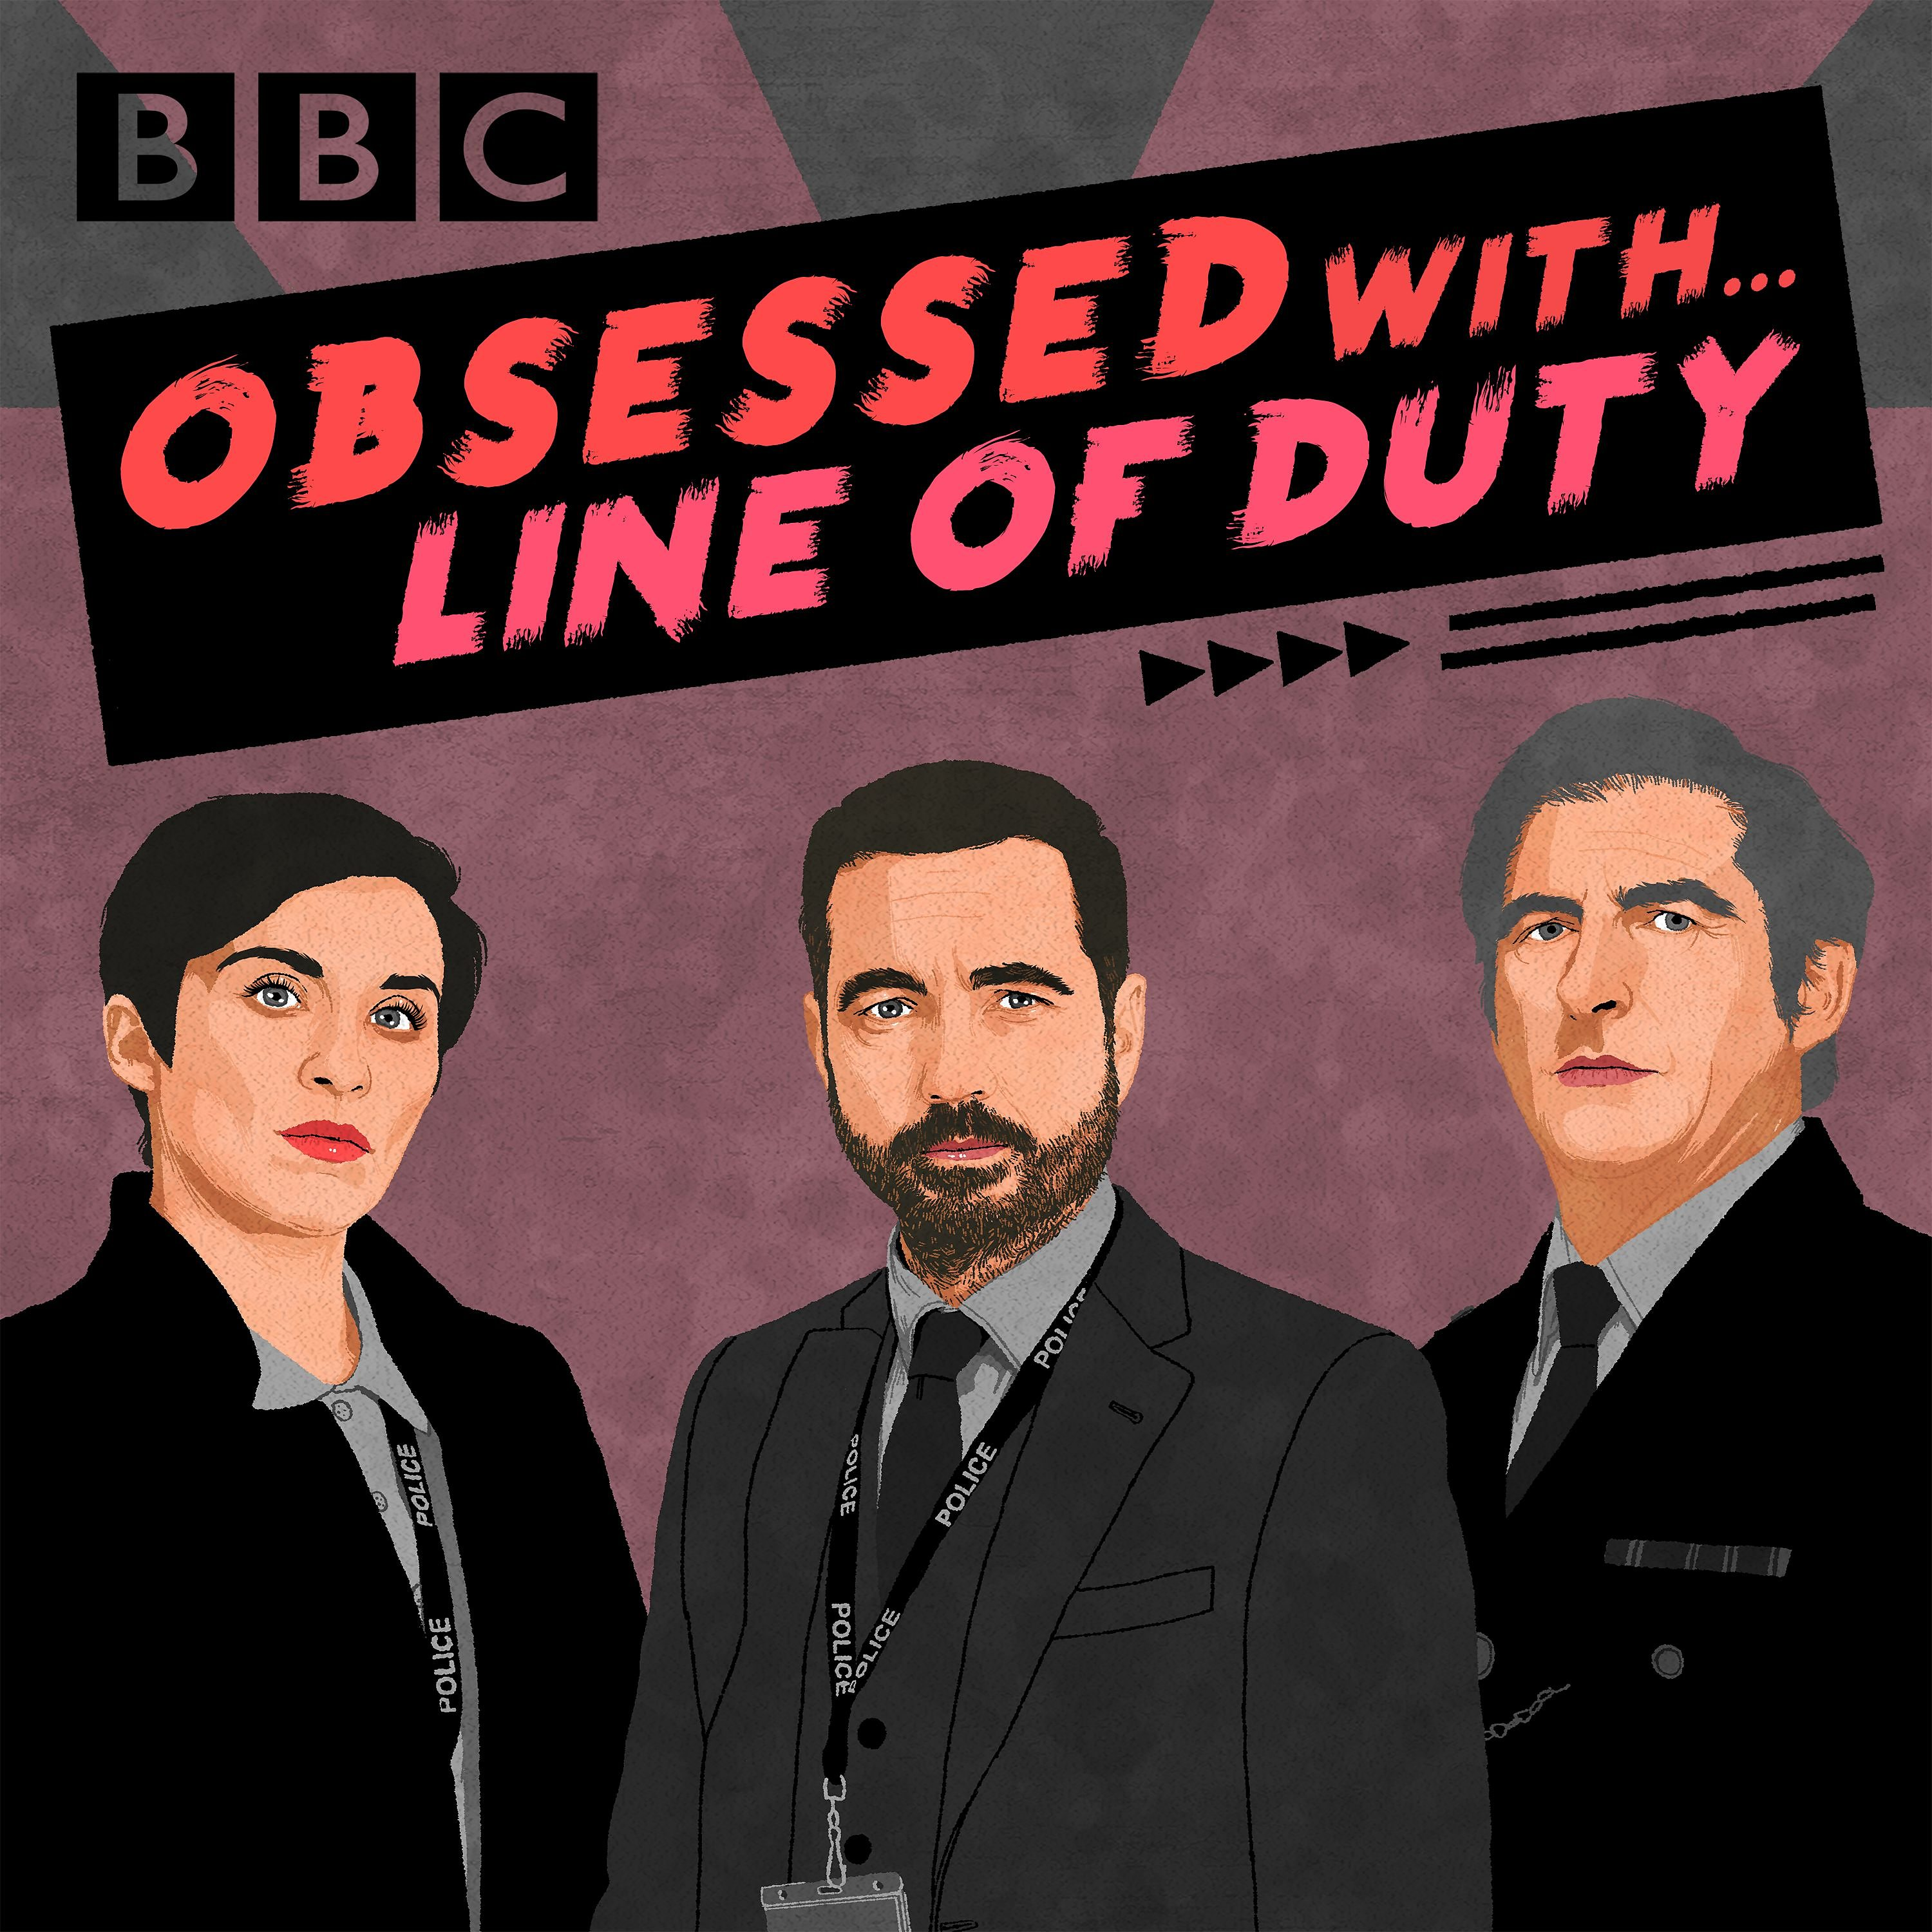 Obsessed with.... Line of Duty